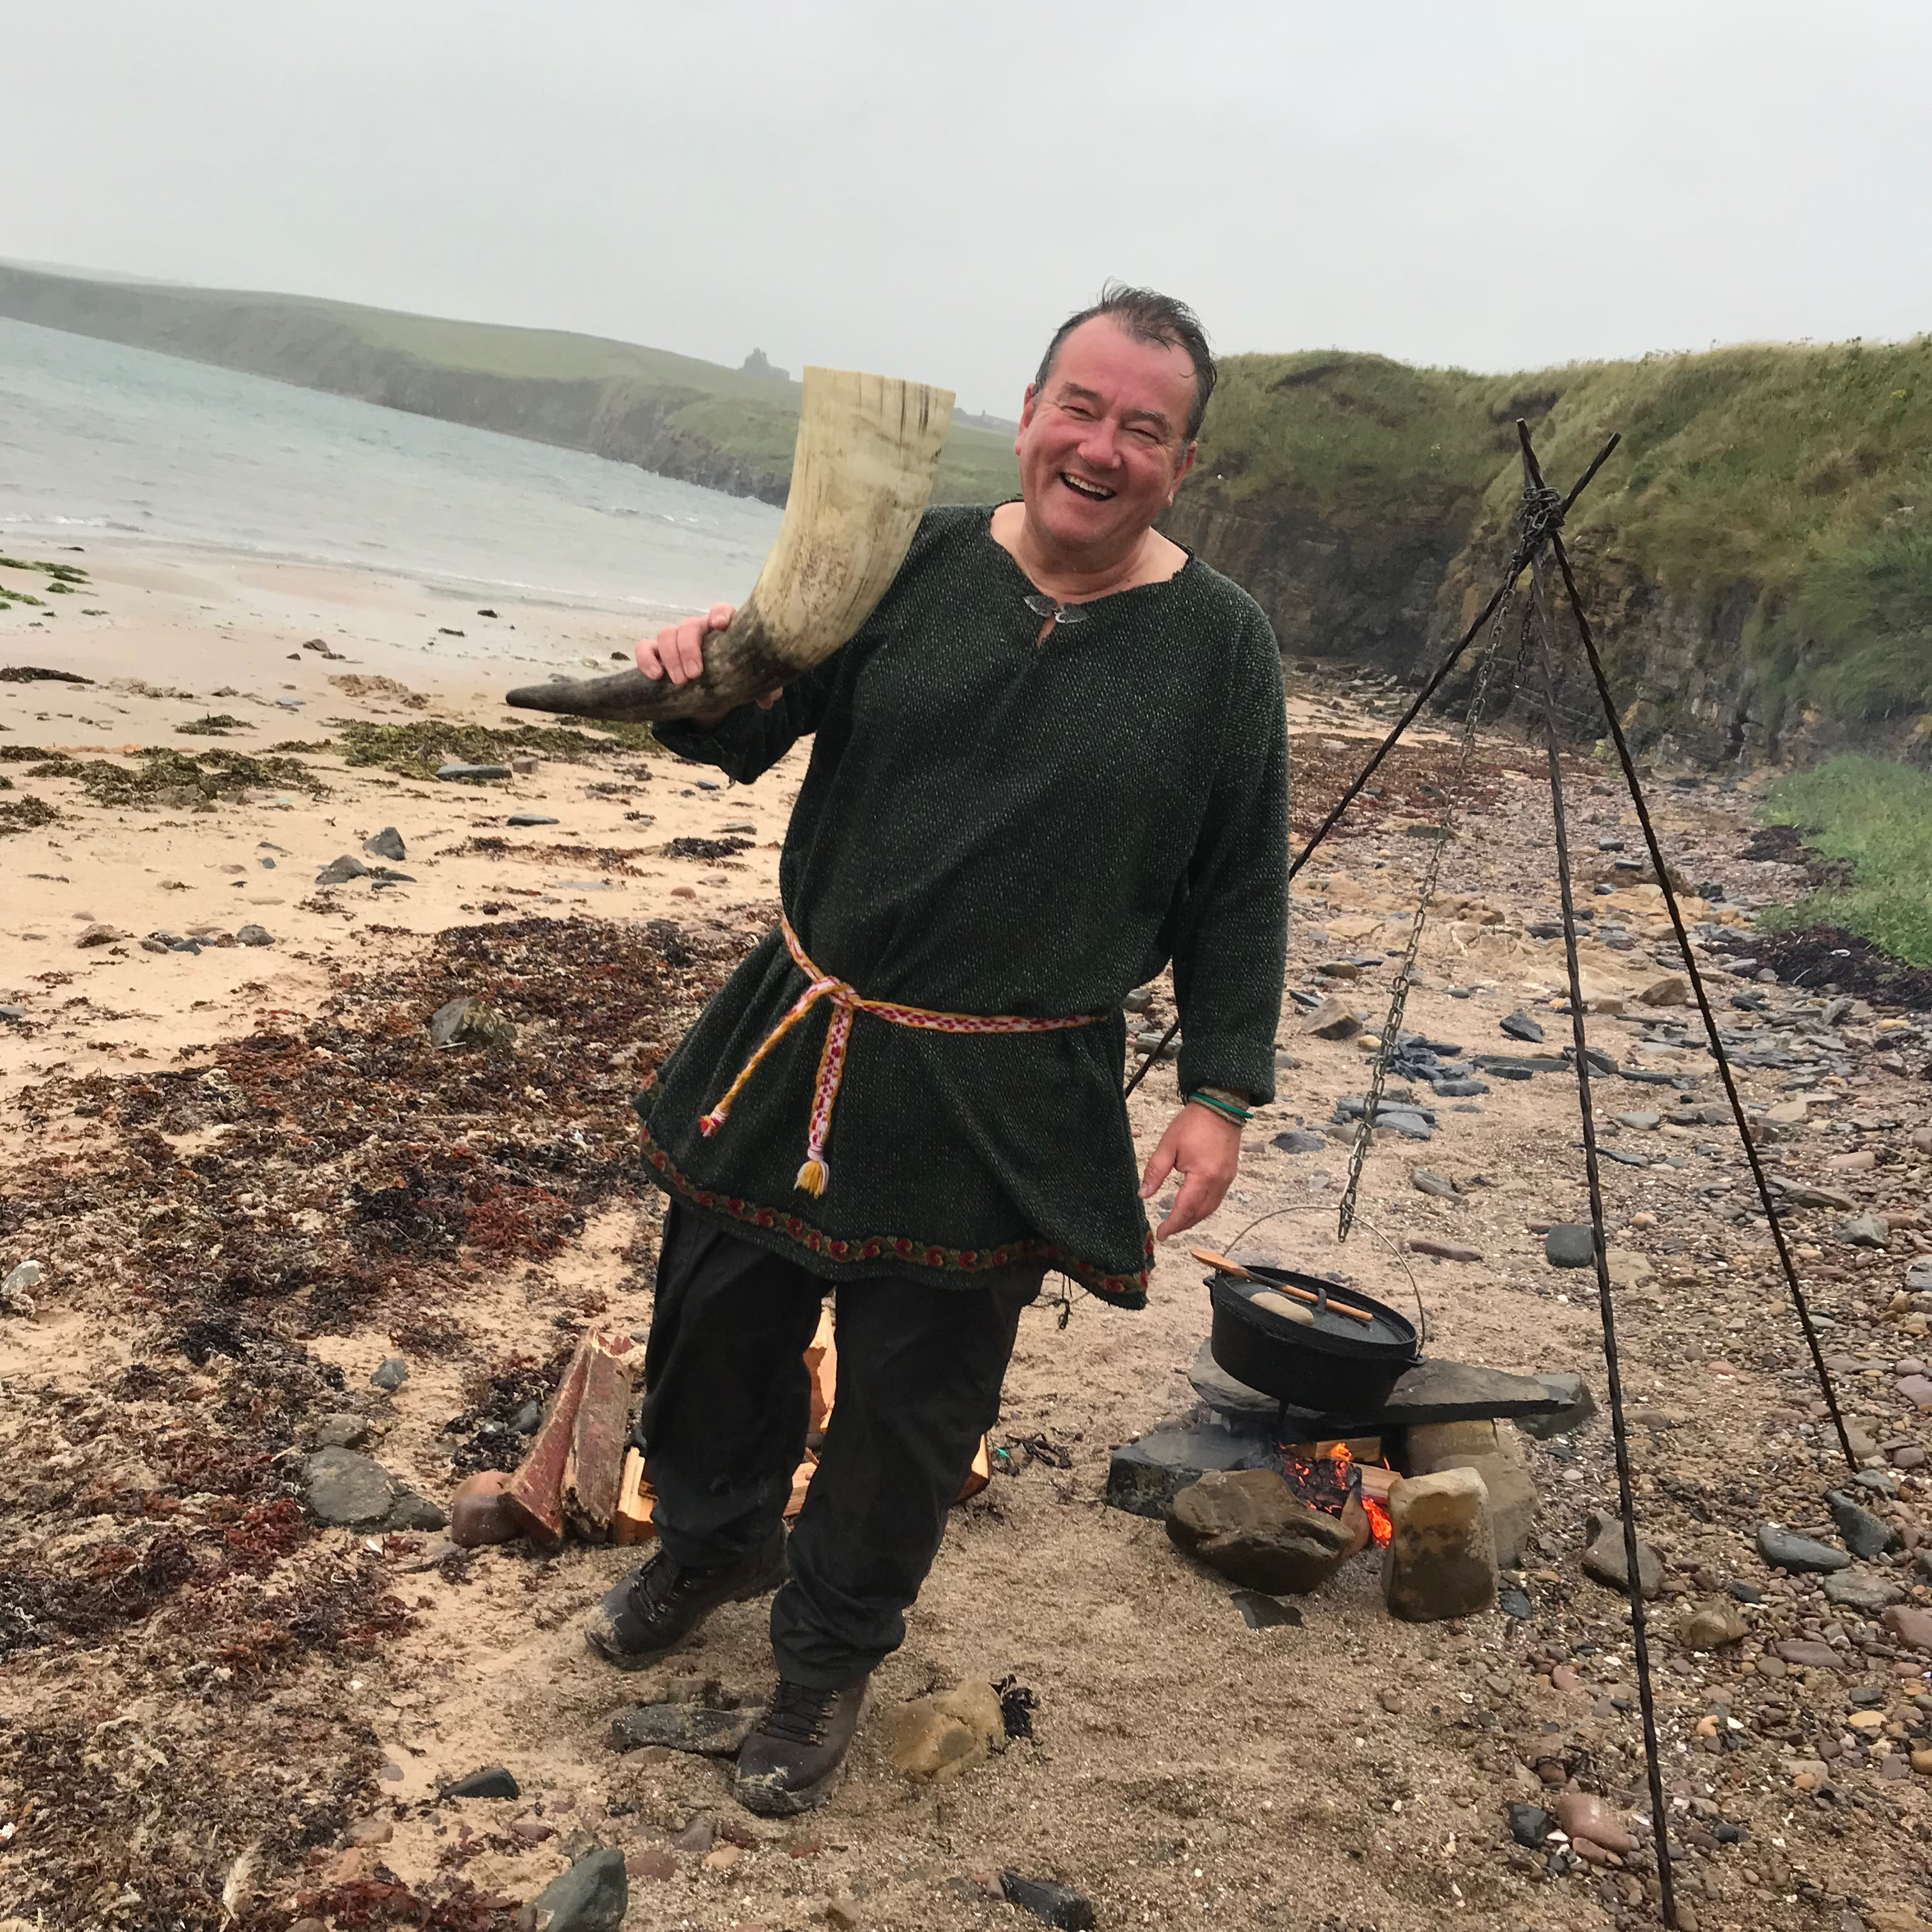 Mark welcomes you to Viking Feast on the Beach